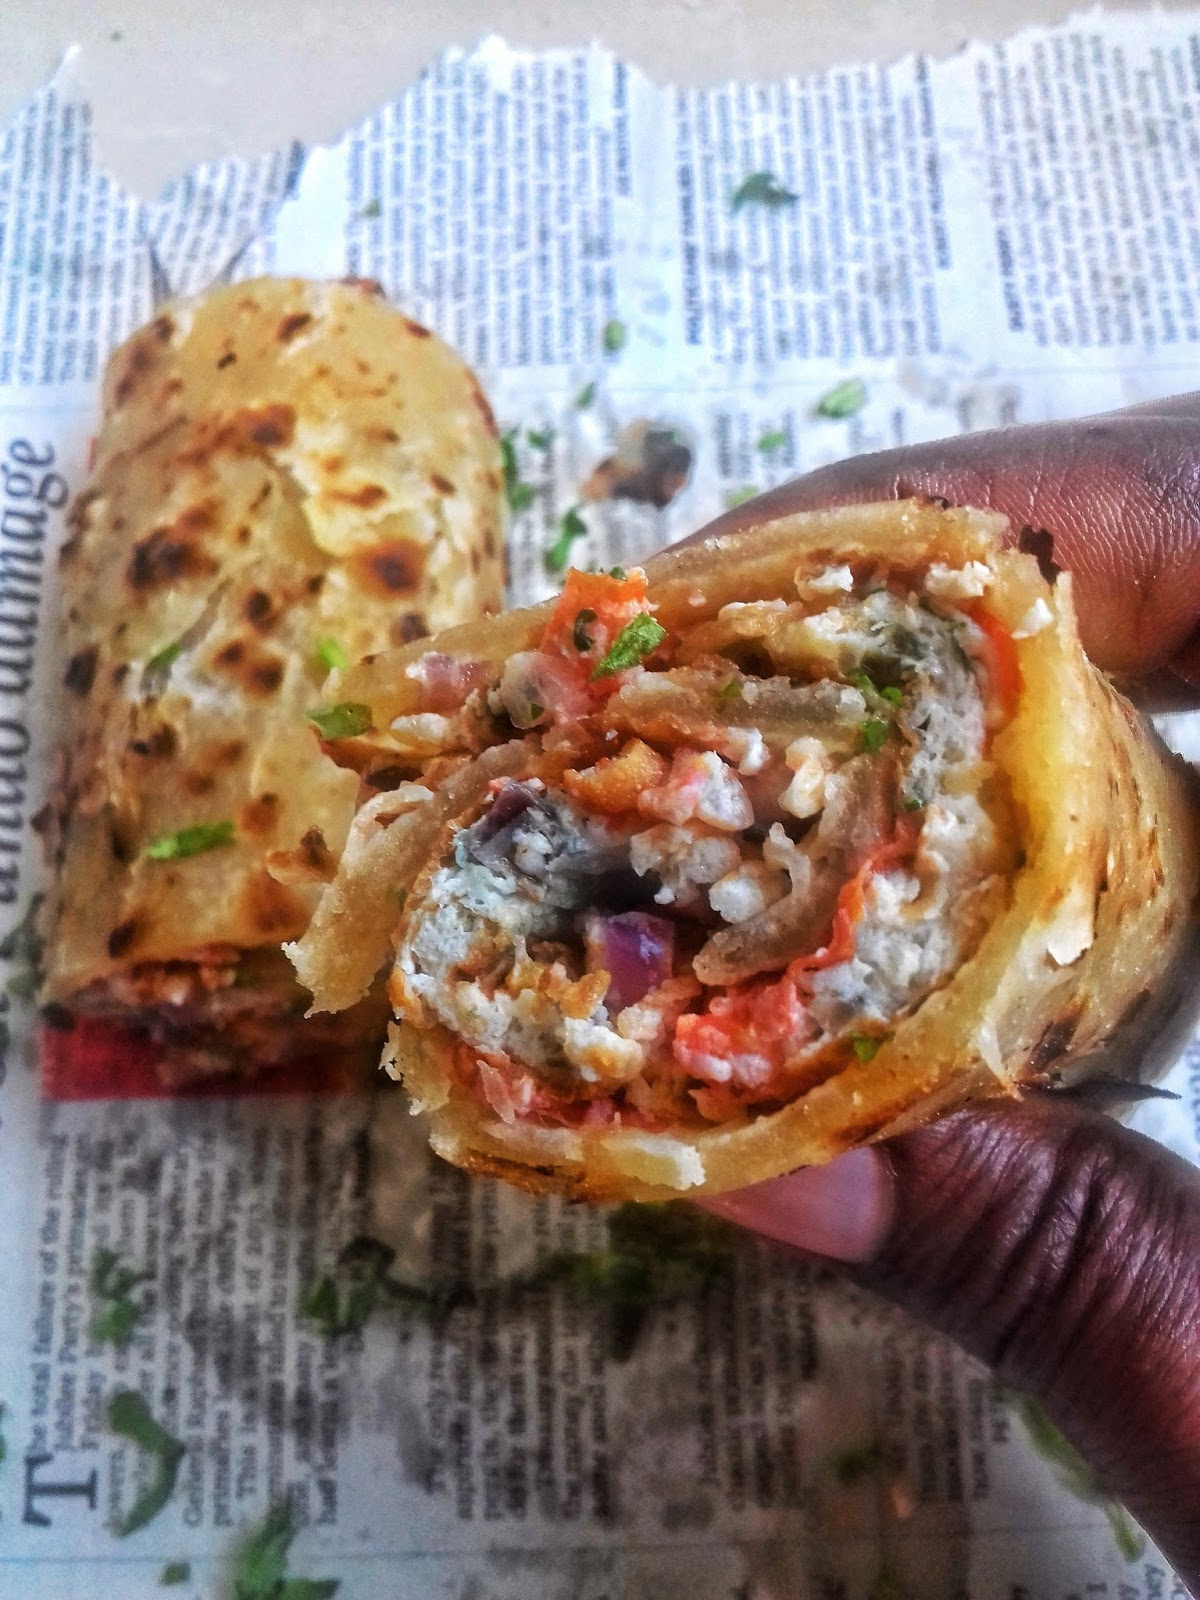 Ugandan rolex nairobi kitchen so today i woke up with cravings for eggs and i remembered that i had heard about ugandan rolex a famous ugandan street food that made headlines a while forumfinder Gallery